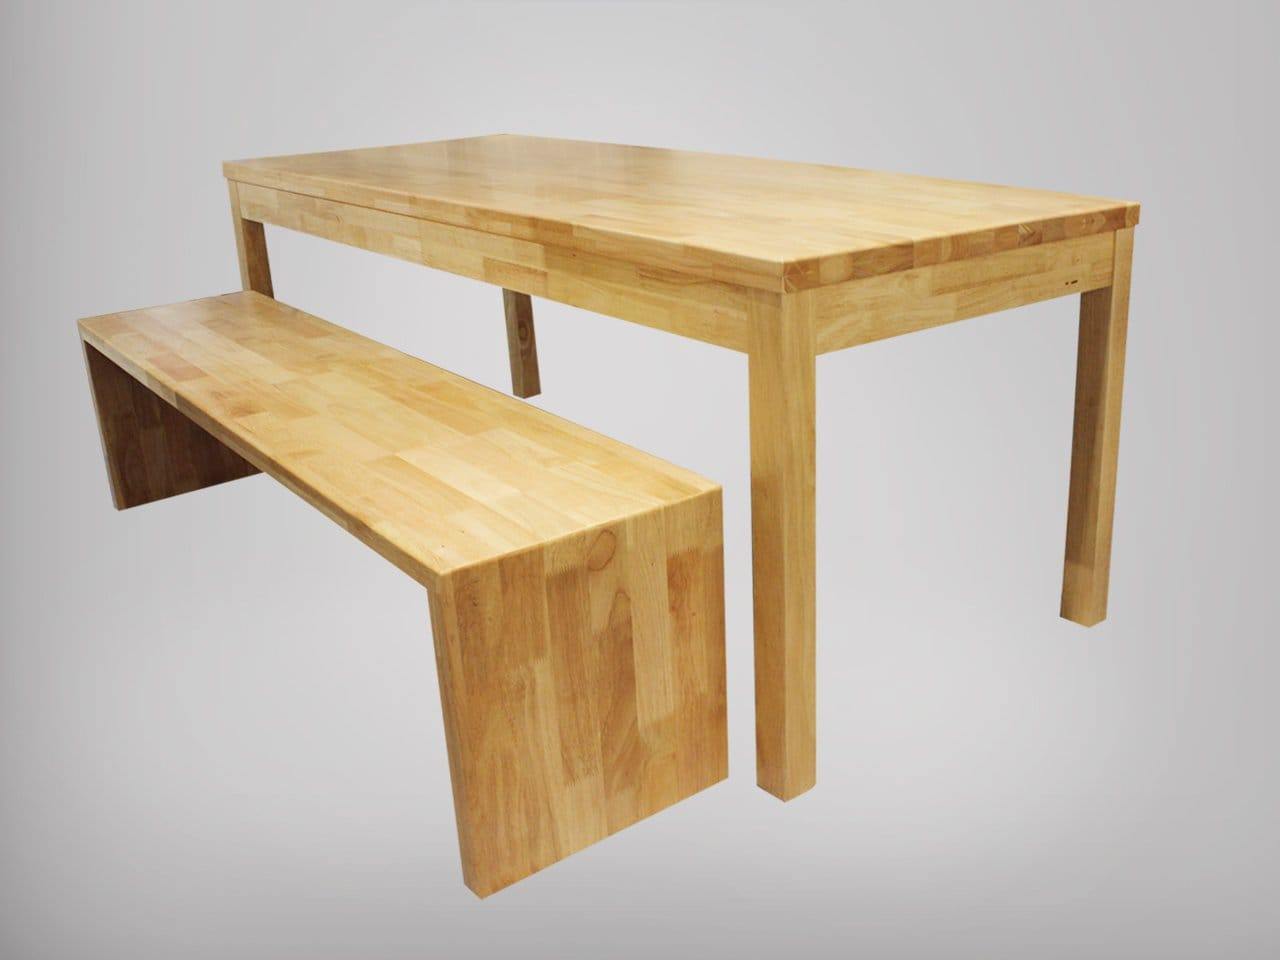 rubberwood dining table 6 chairs design district console table by